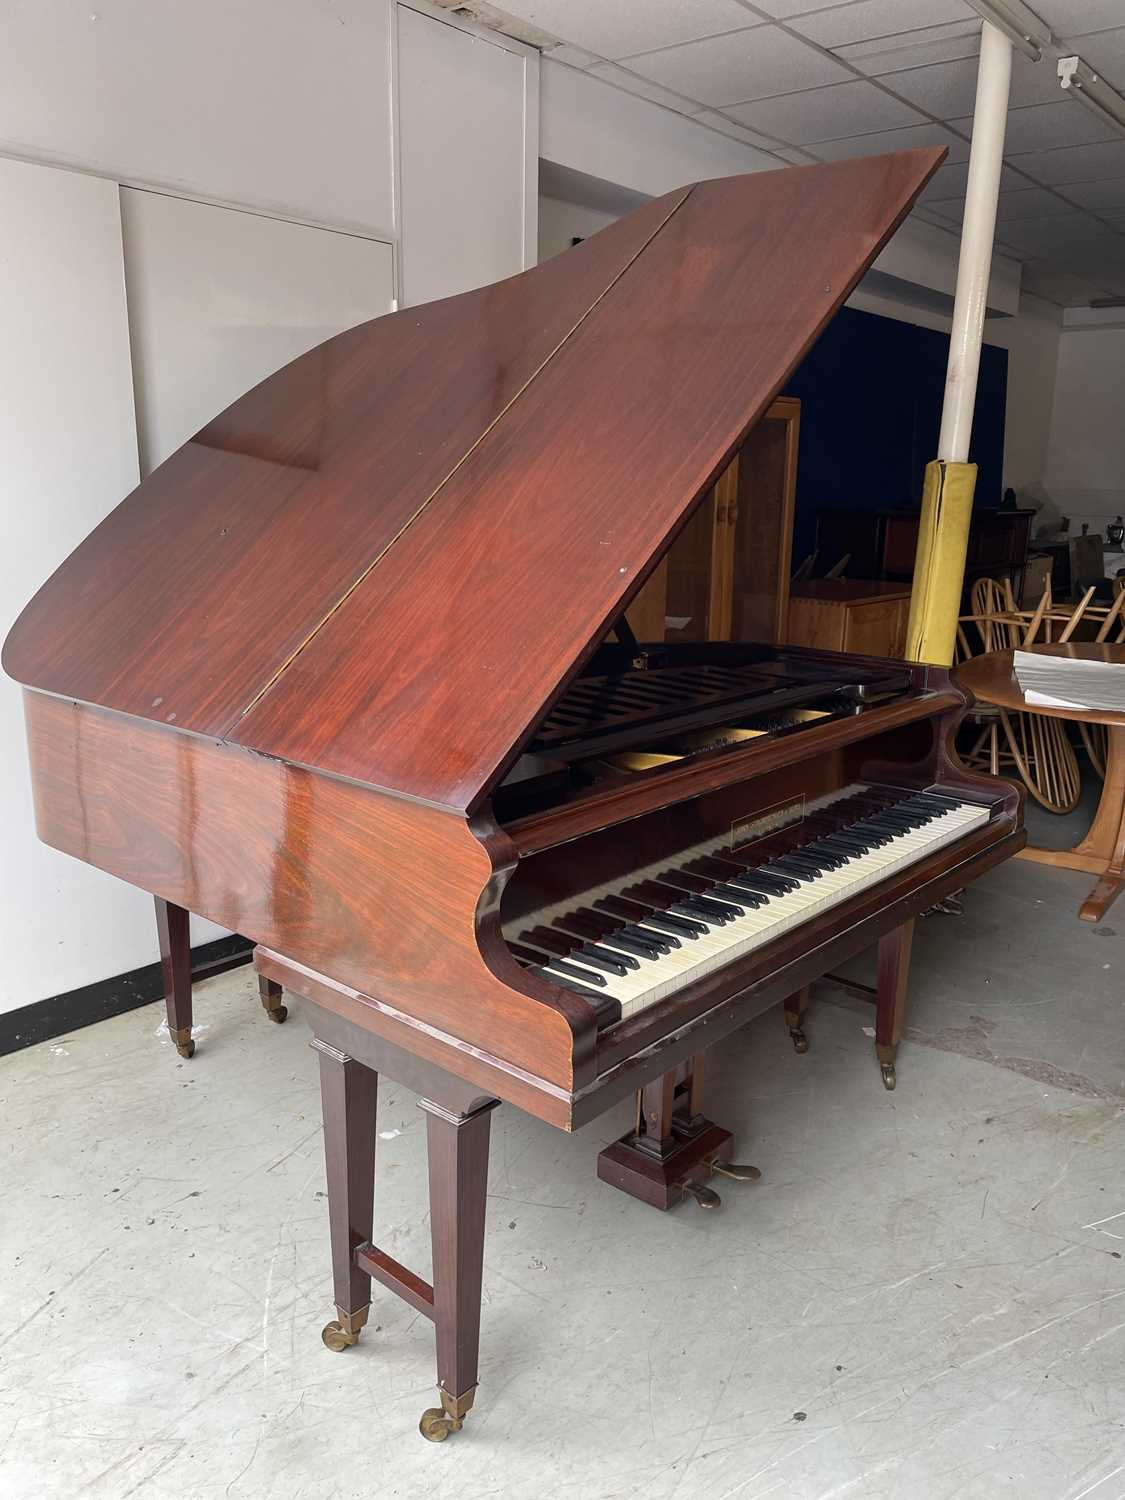 A mahogany cased baby grand piano, by John Strohmenger & Sons, London, 143 cm wide x 101 cm high x - Image 3 of 21